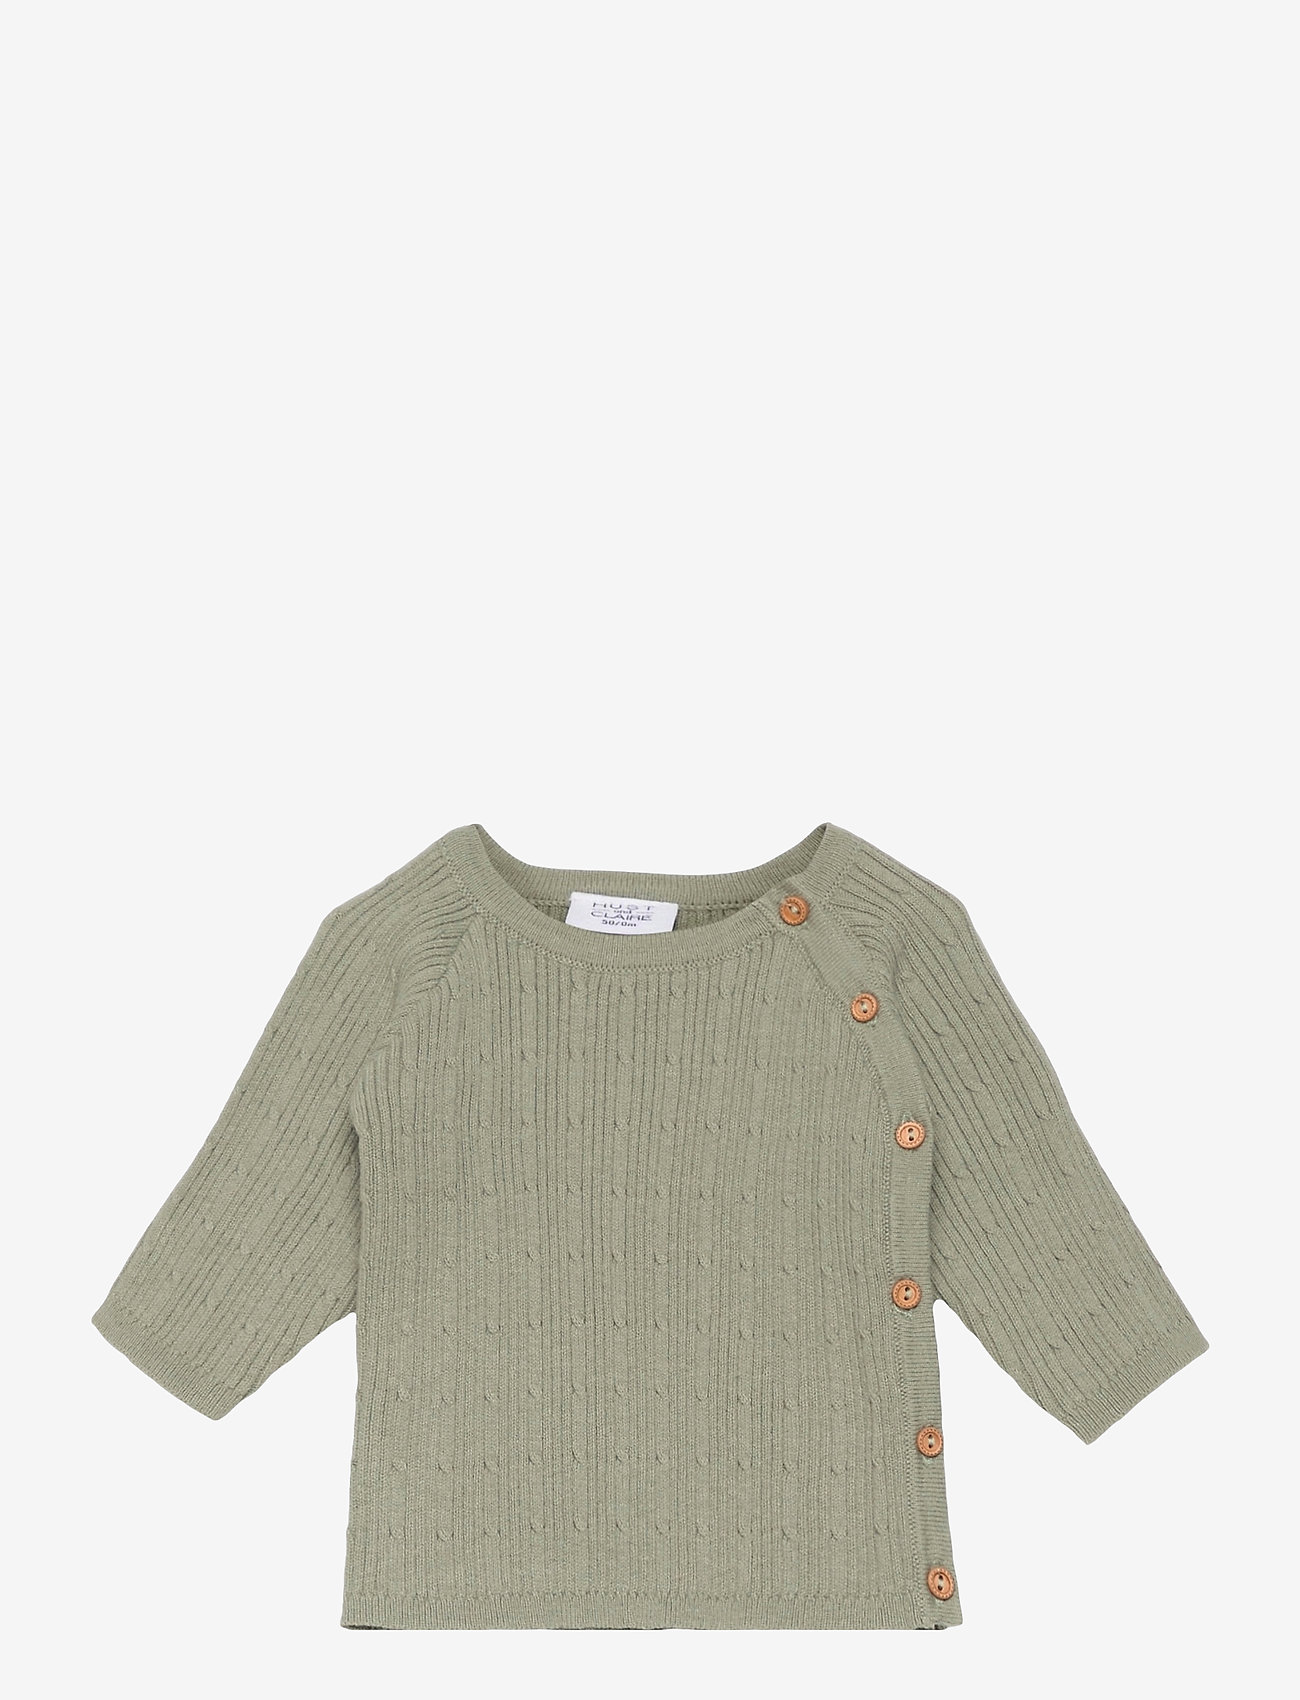 Hust & Claire - Cissy - Cardigan - gilets - seagrass - 0